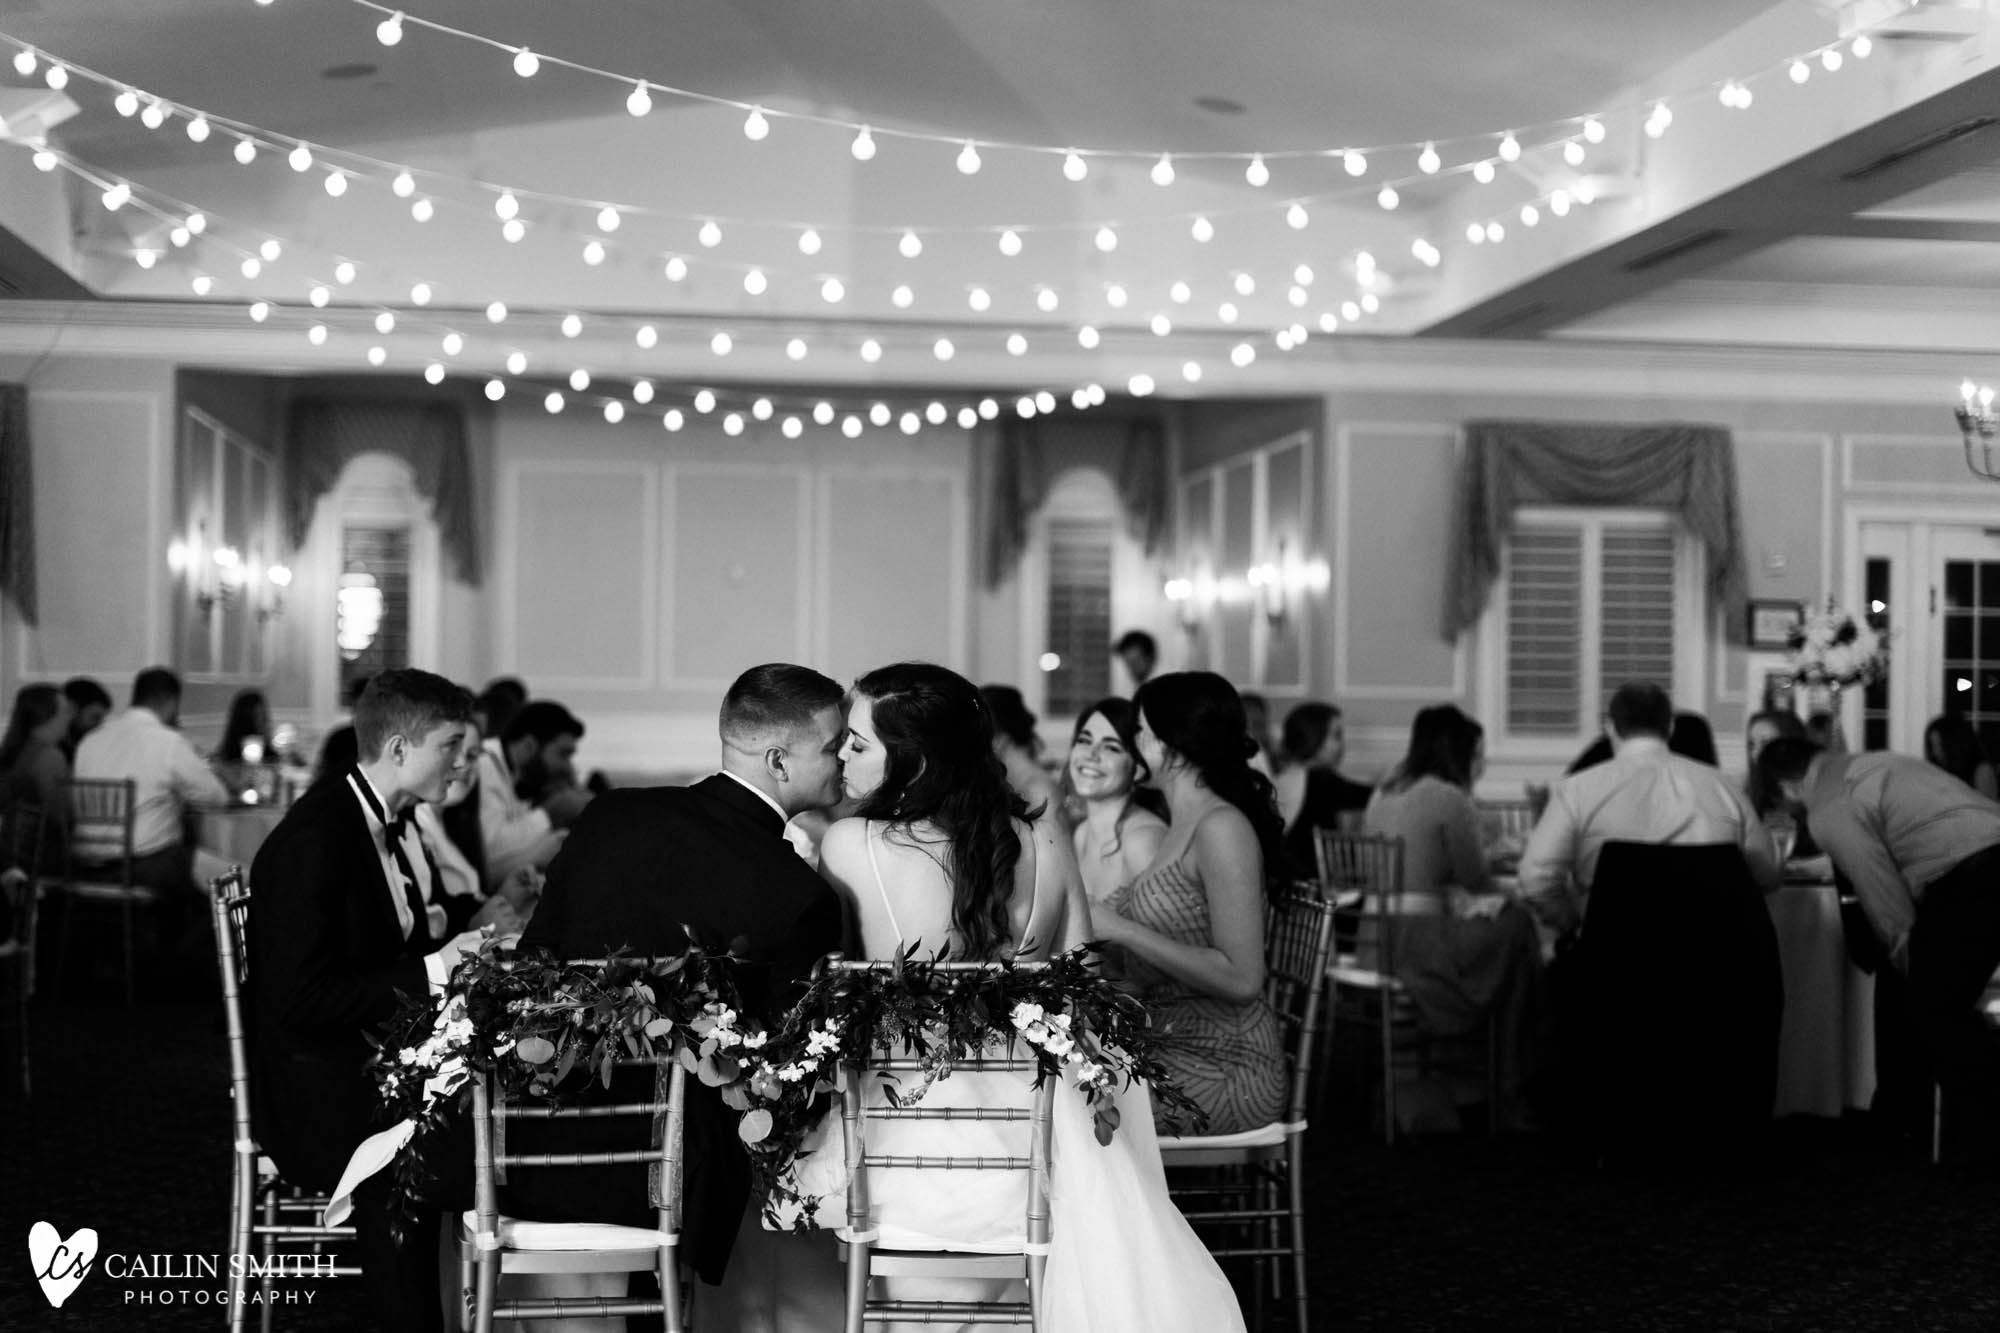 Meaghan_Chase_St_Augustine_River_House_Wedding_Photography_069.jpg